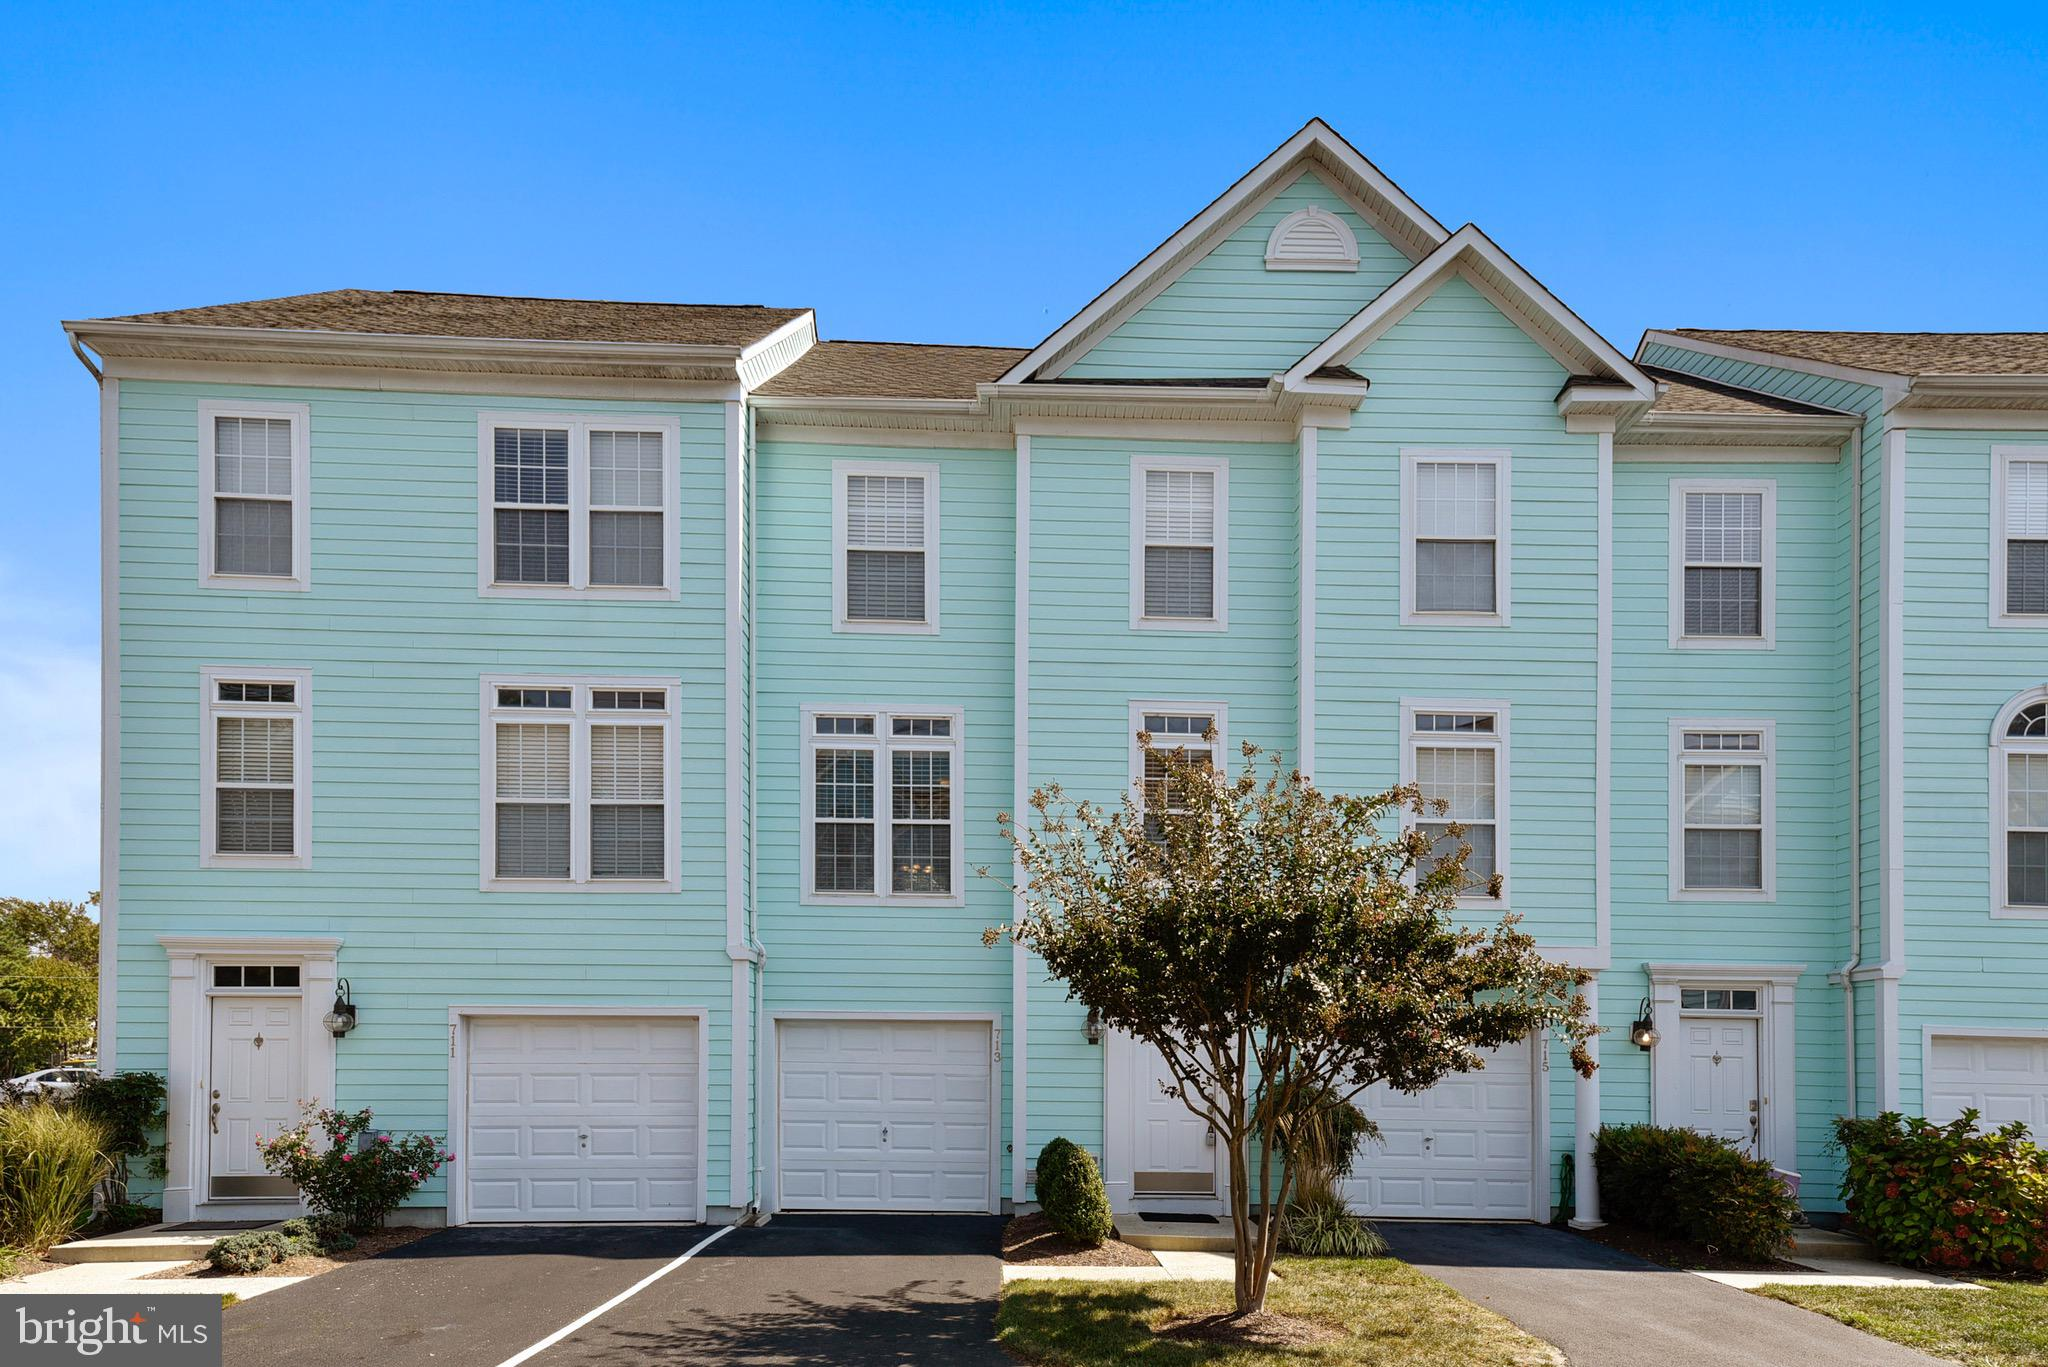 Move in ready...unpack your bags and relax in this beautiful townhouse in the desirable Bethany Shor